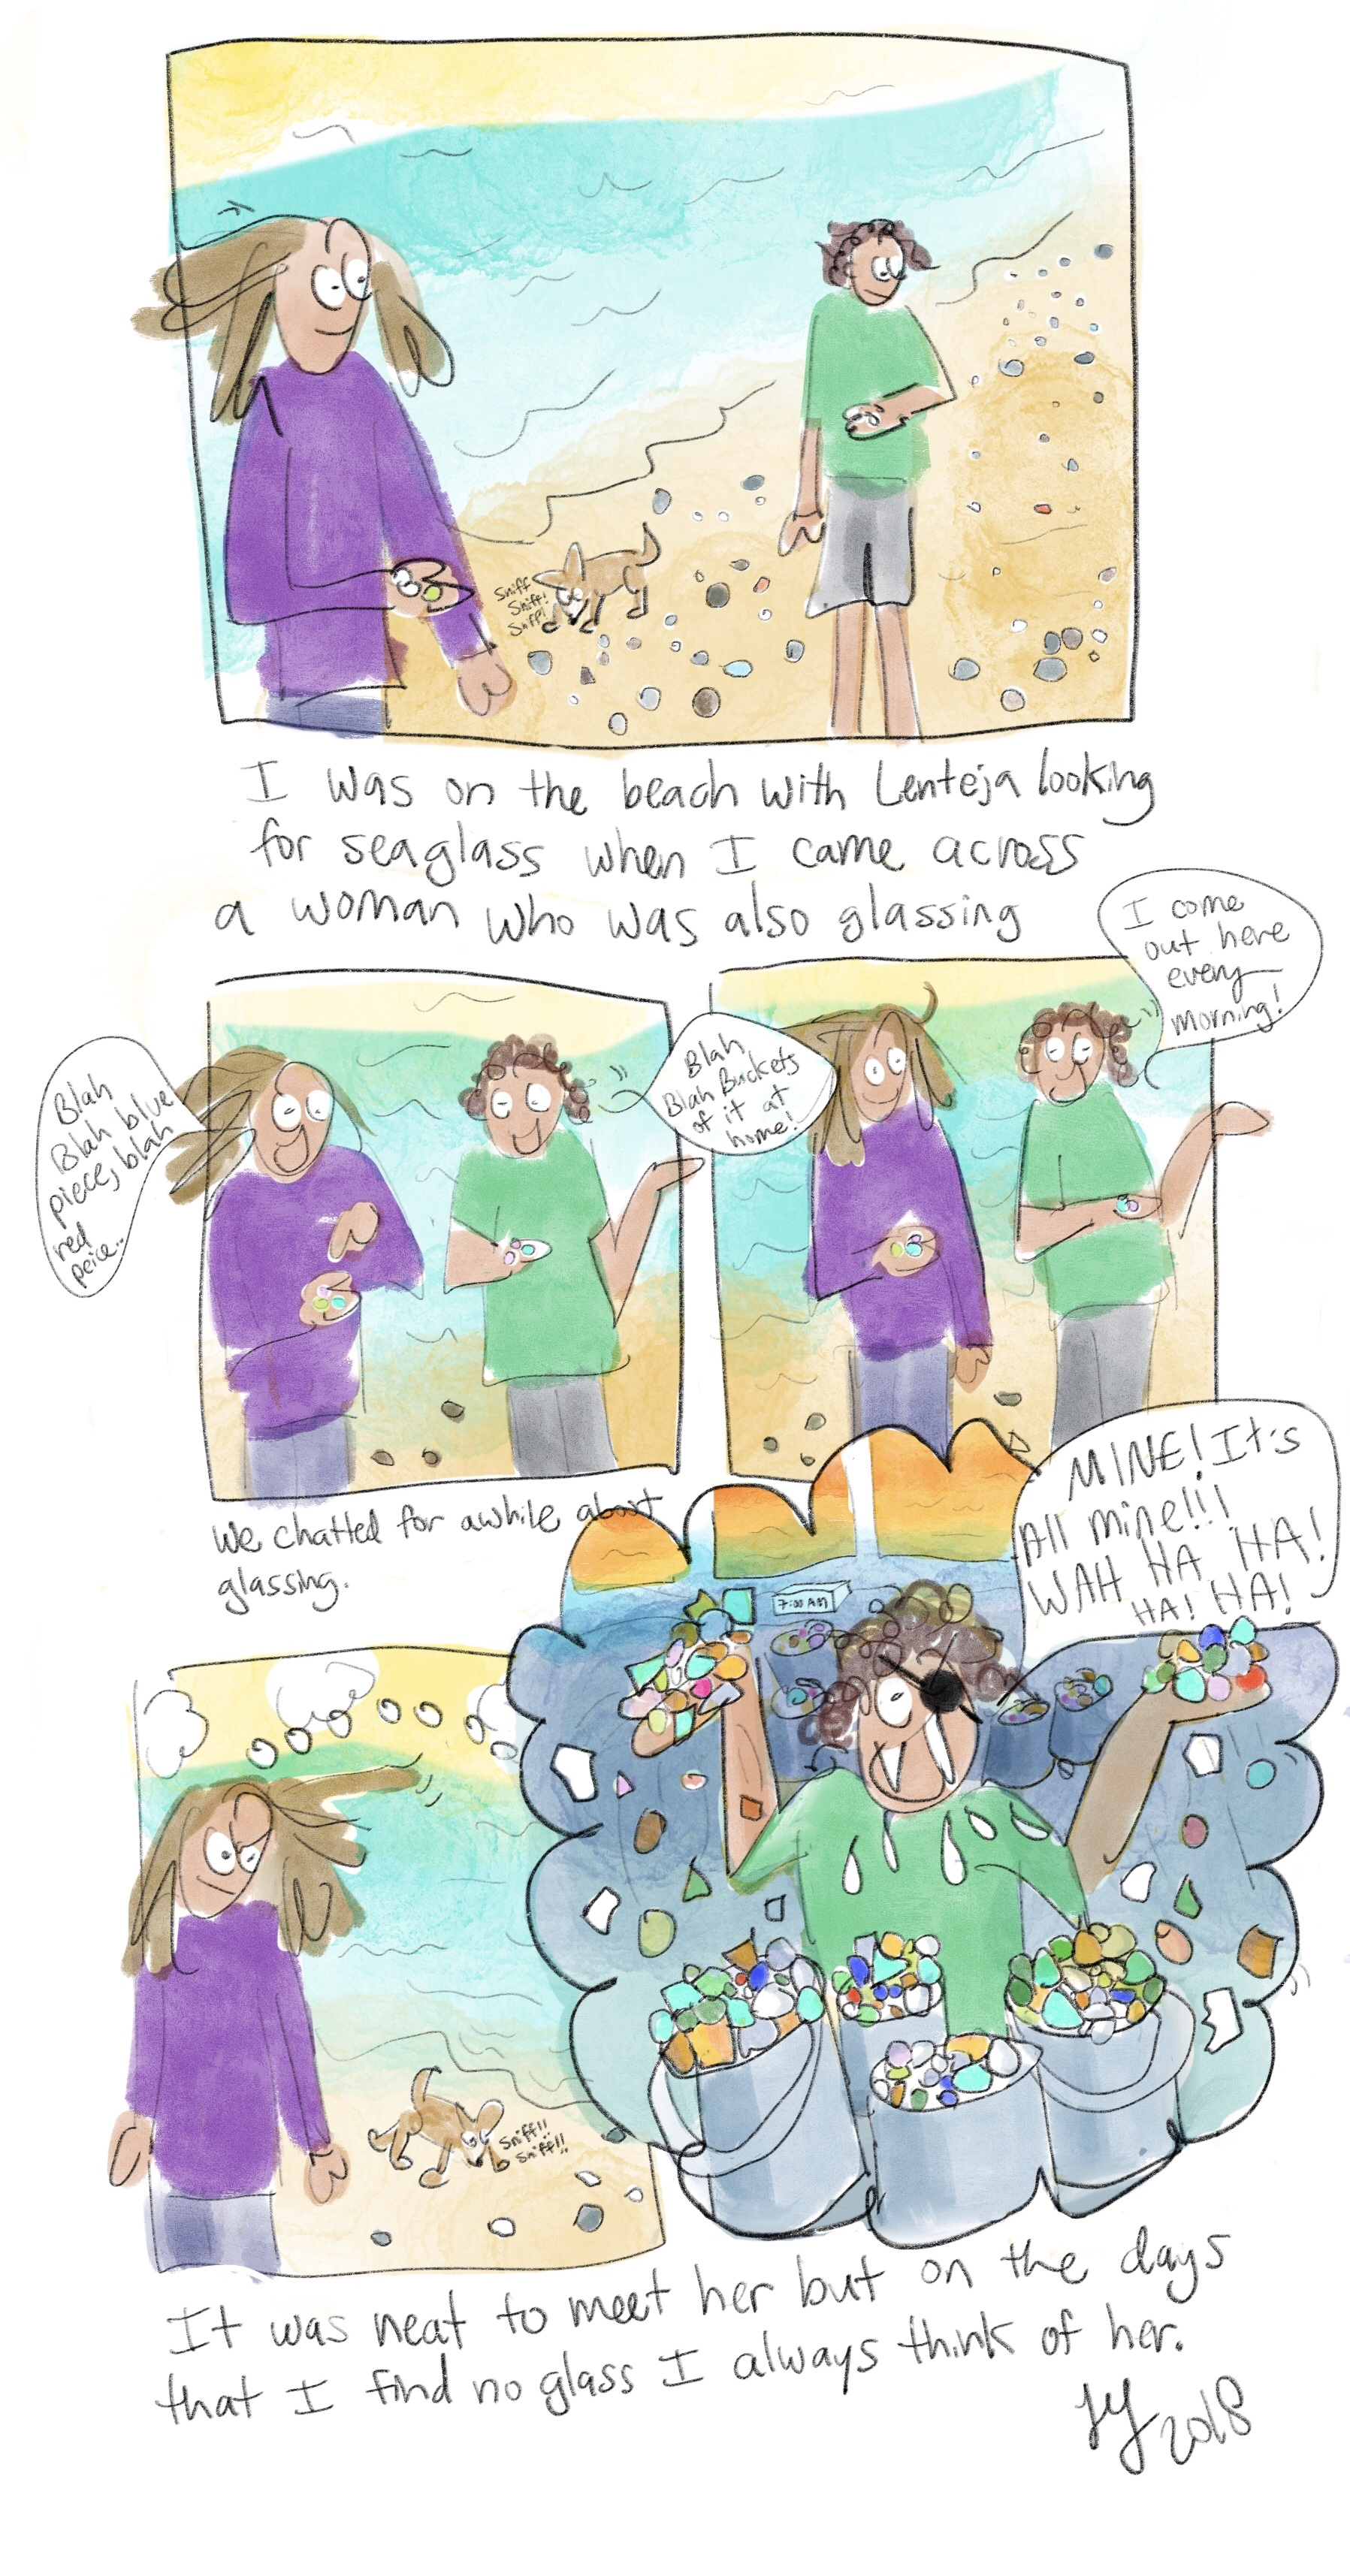 I made this comic about looking for sea glass on the beach in Rogers Park. I met a woman out there who was also looking for seaglass. She says she is there every morning really early. Do you know what that means? It means she is getting all of the good sea glass while I am still sleeping. This is a weird funny comic.